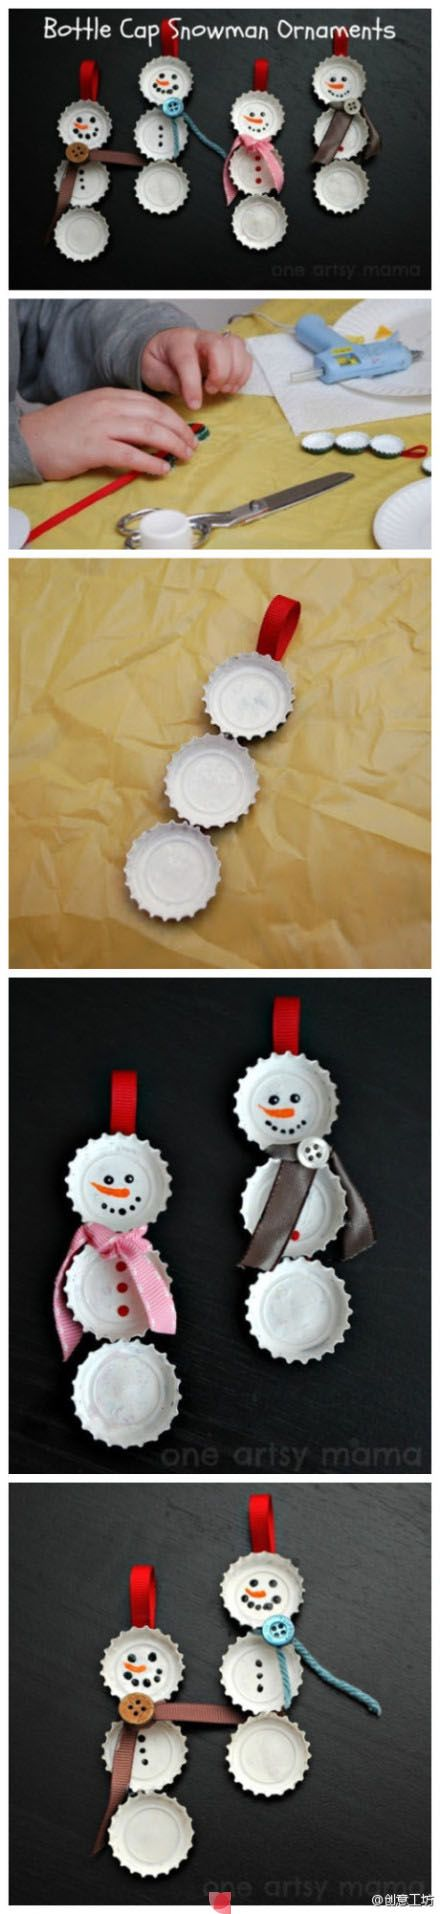 How to make bottle cap snowmen recipe crafts teaching for How to make bottle cap crafts